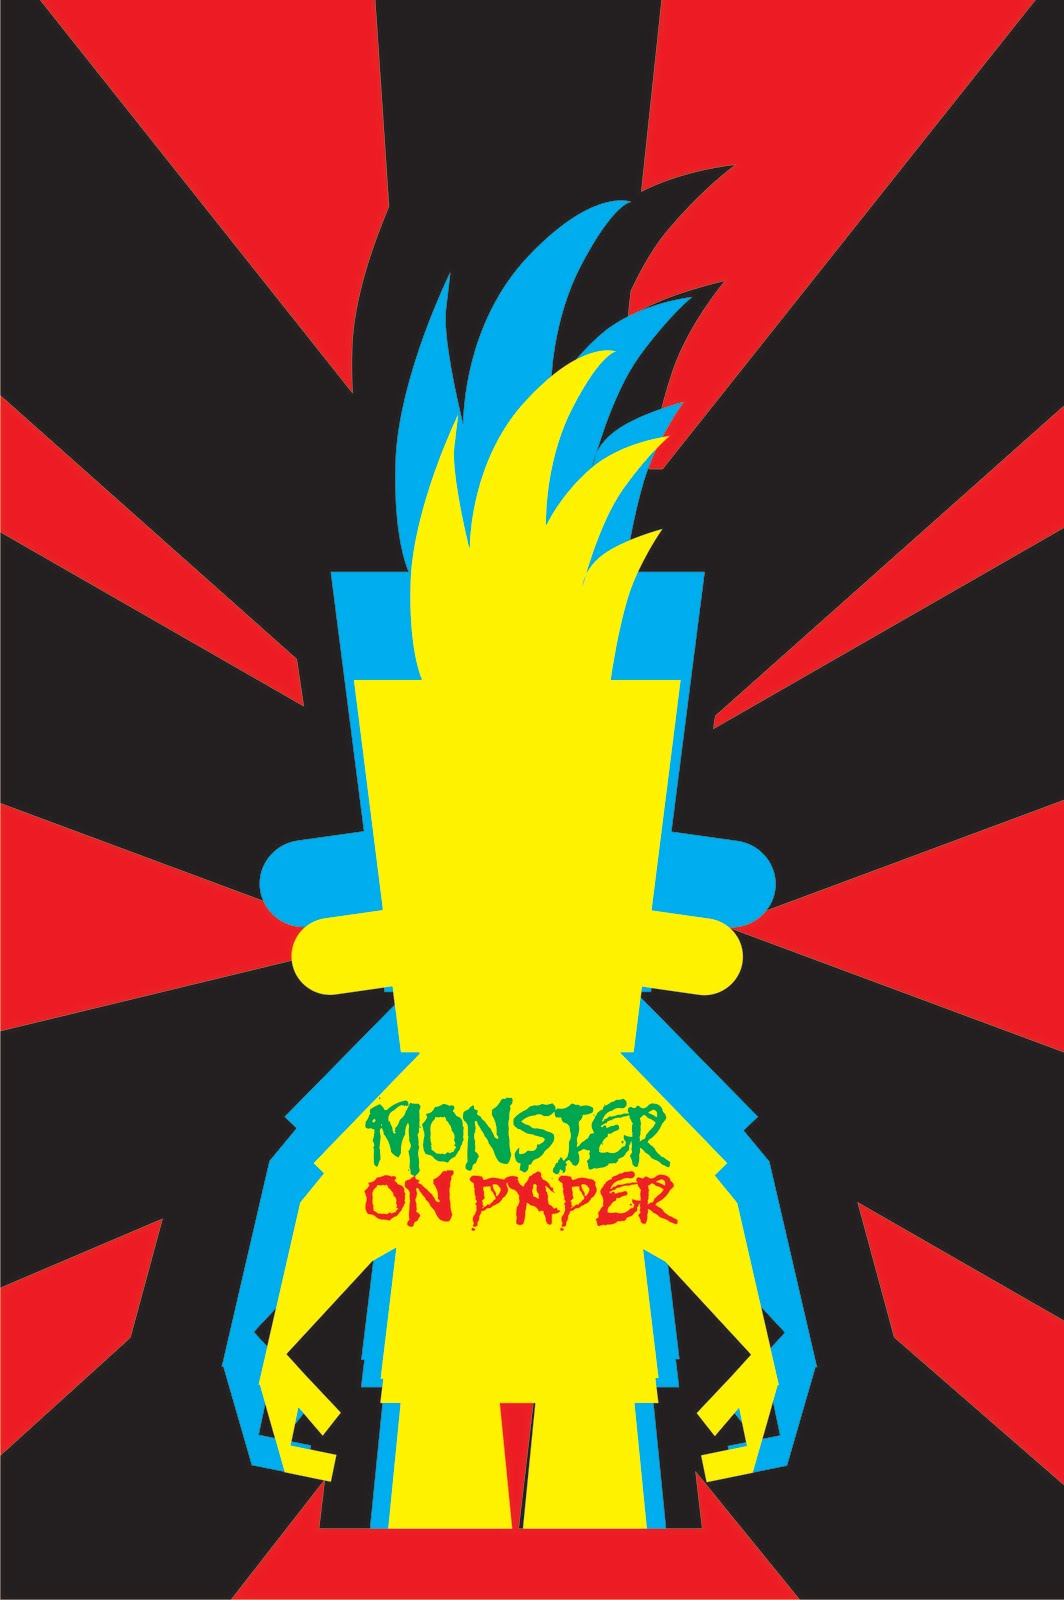 monster on paper